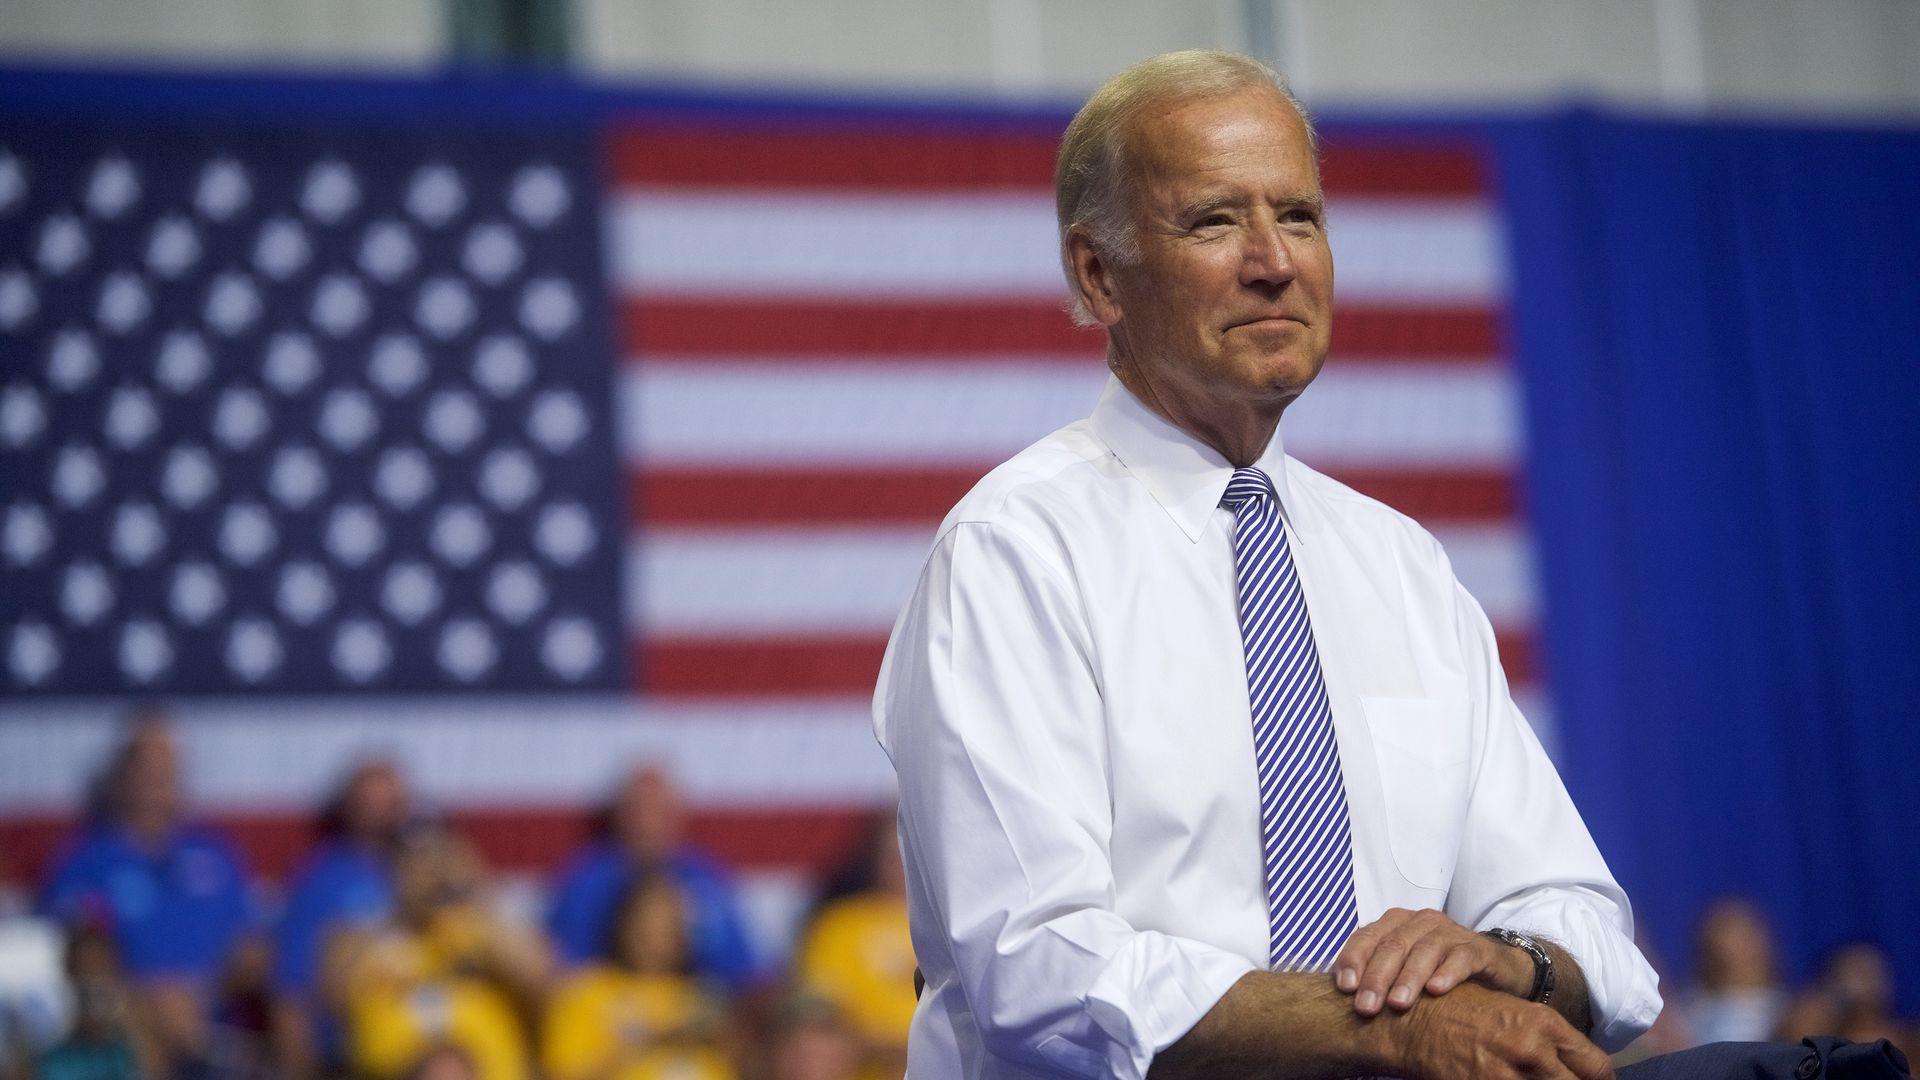 Joe Biden on the issues, in under 500 words